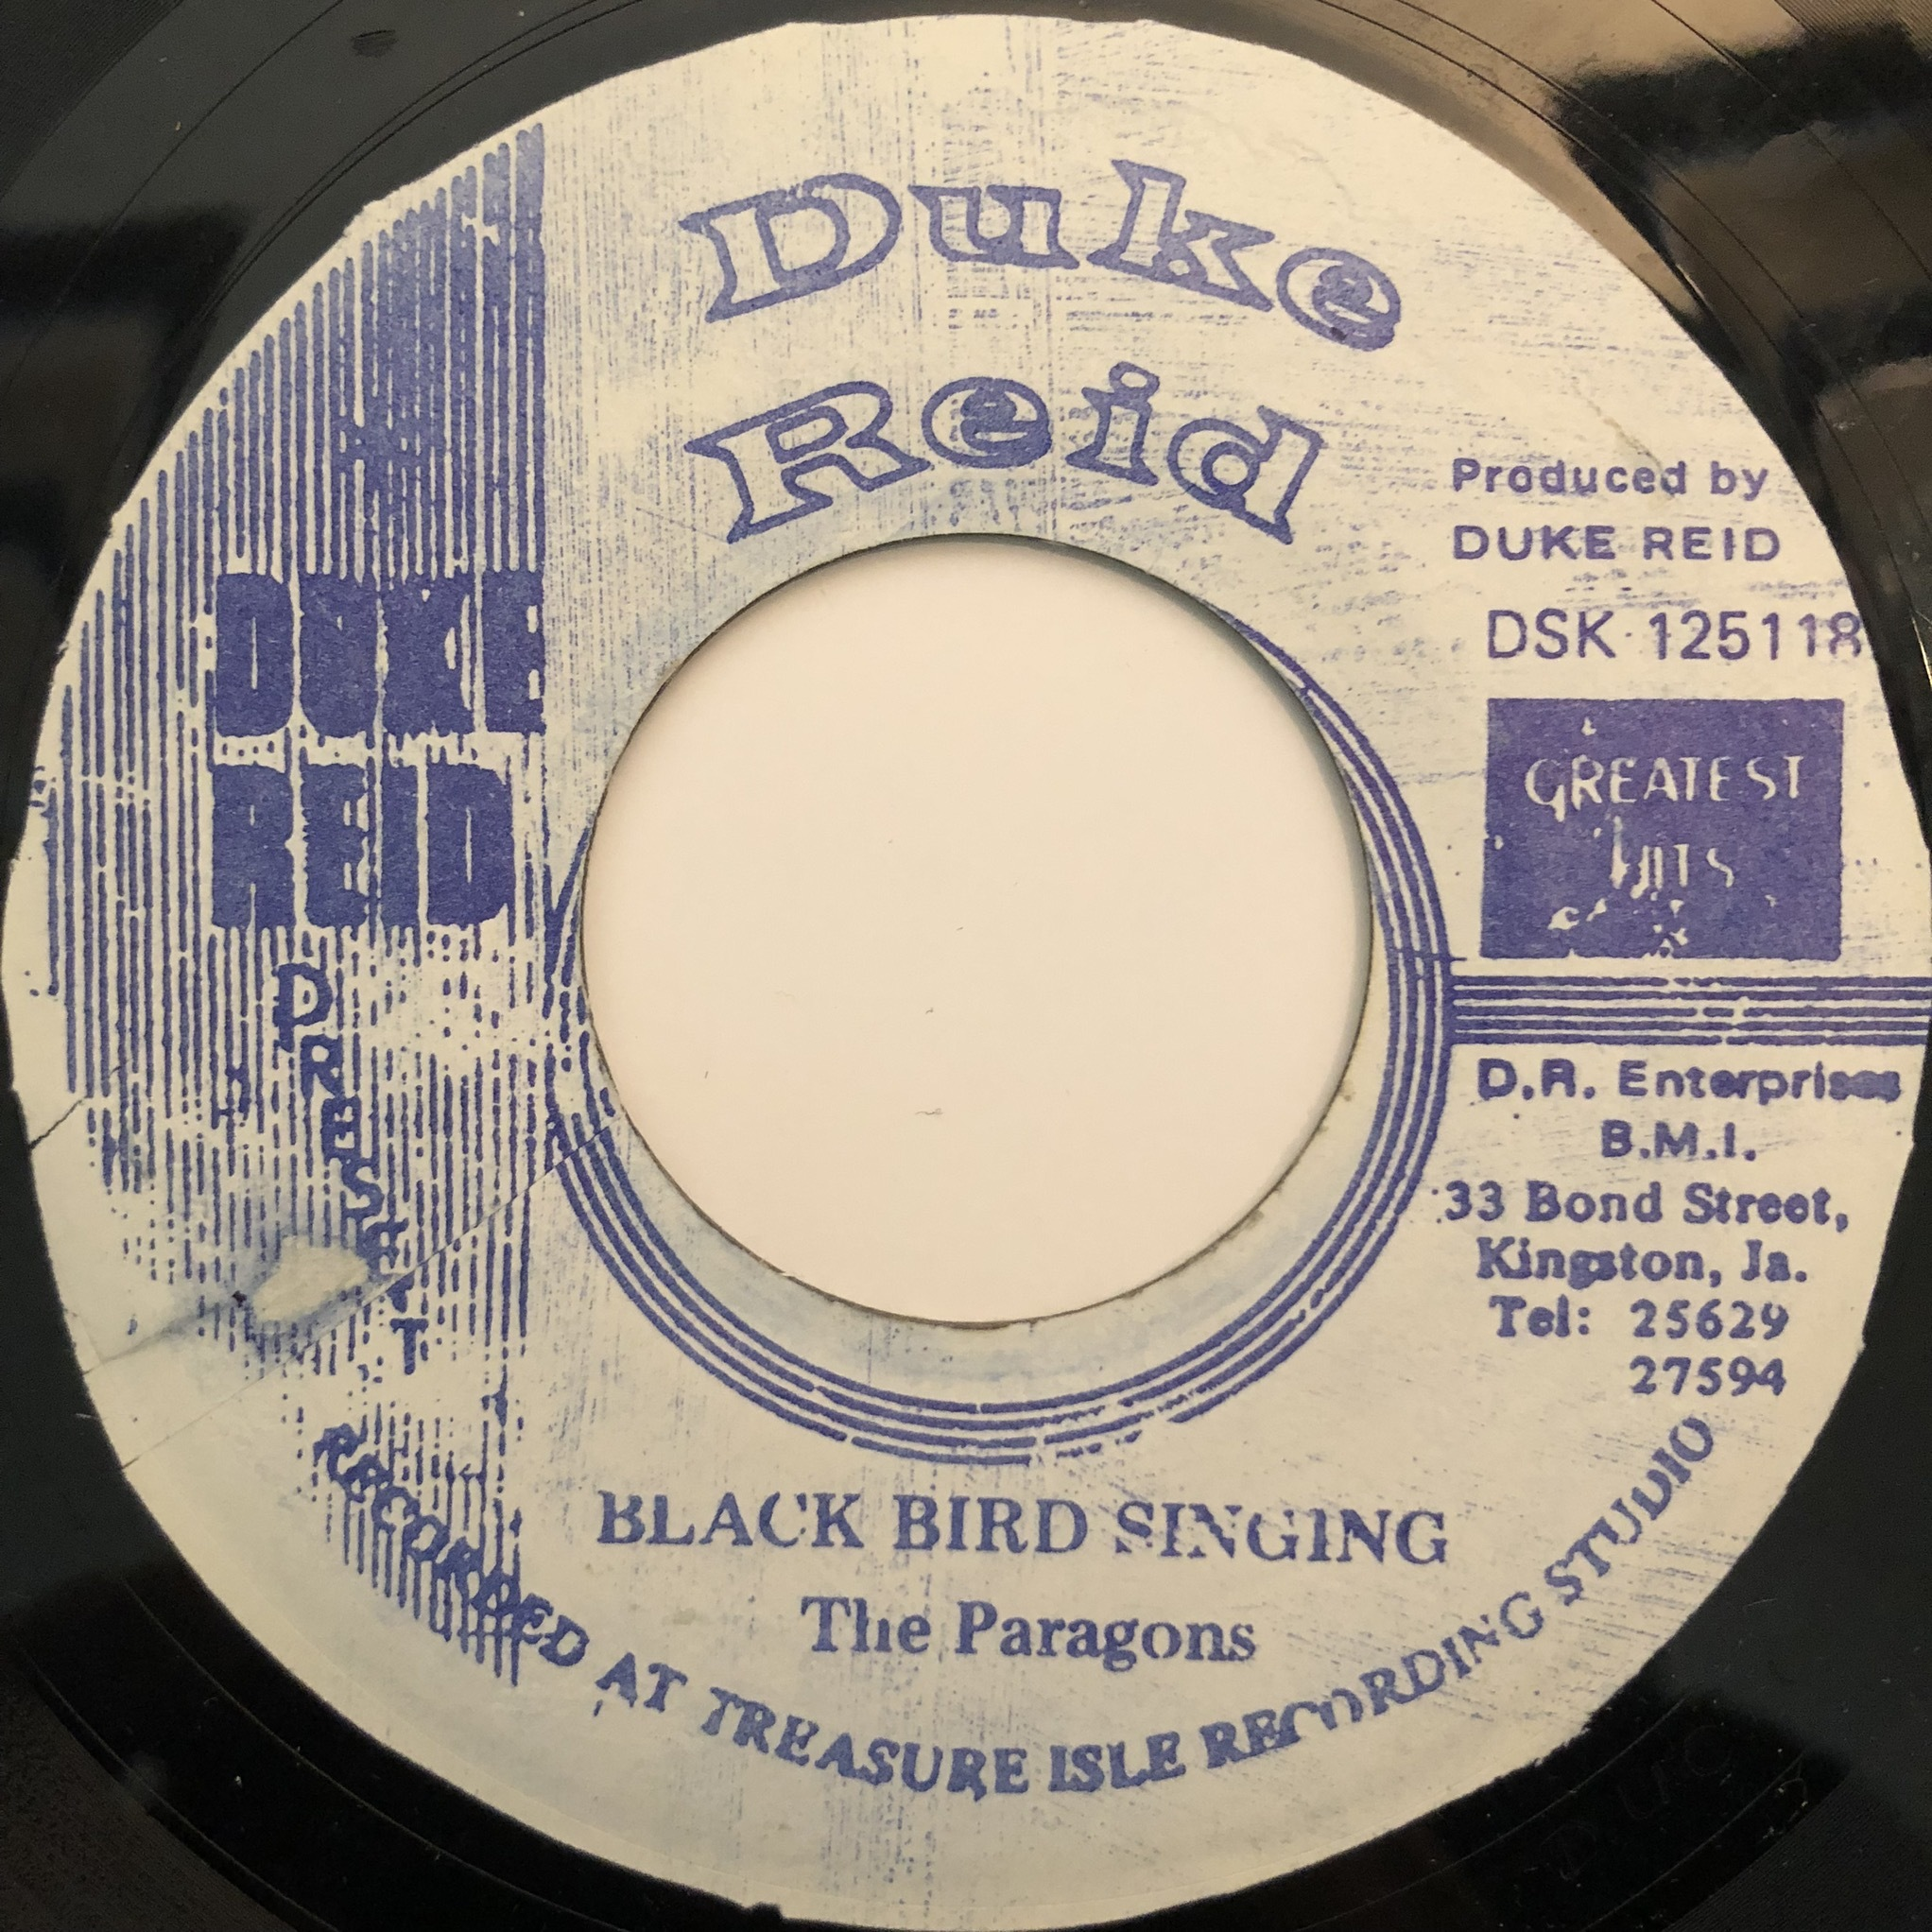 The Paragons - Black Bird Singing【7-20340】